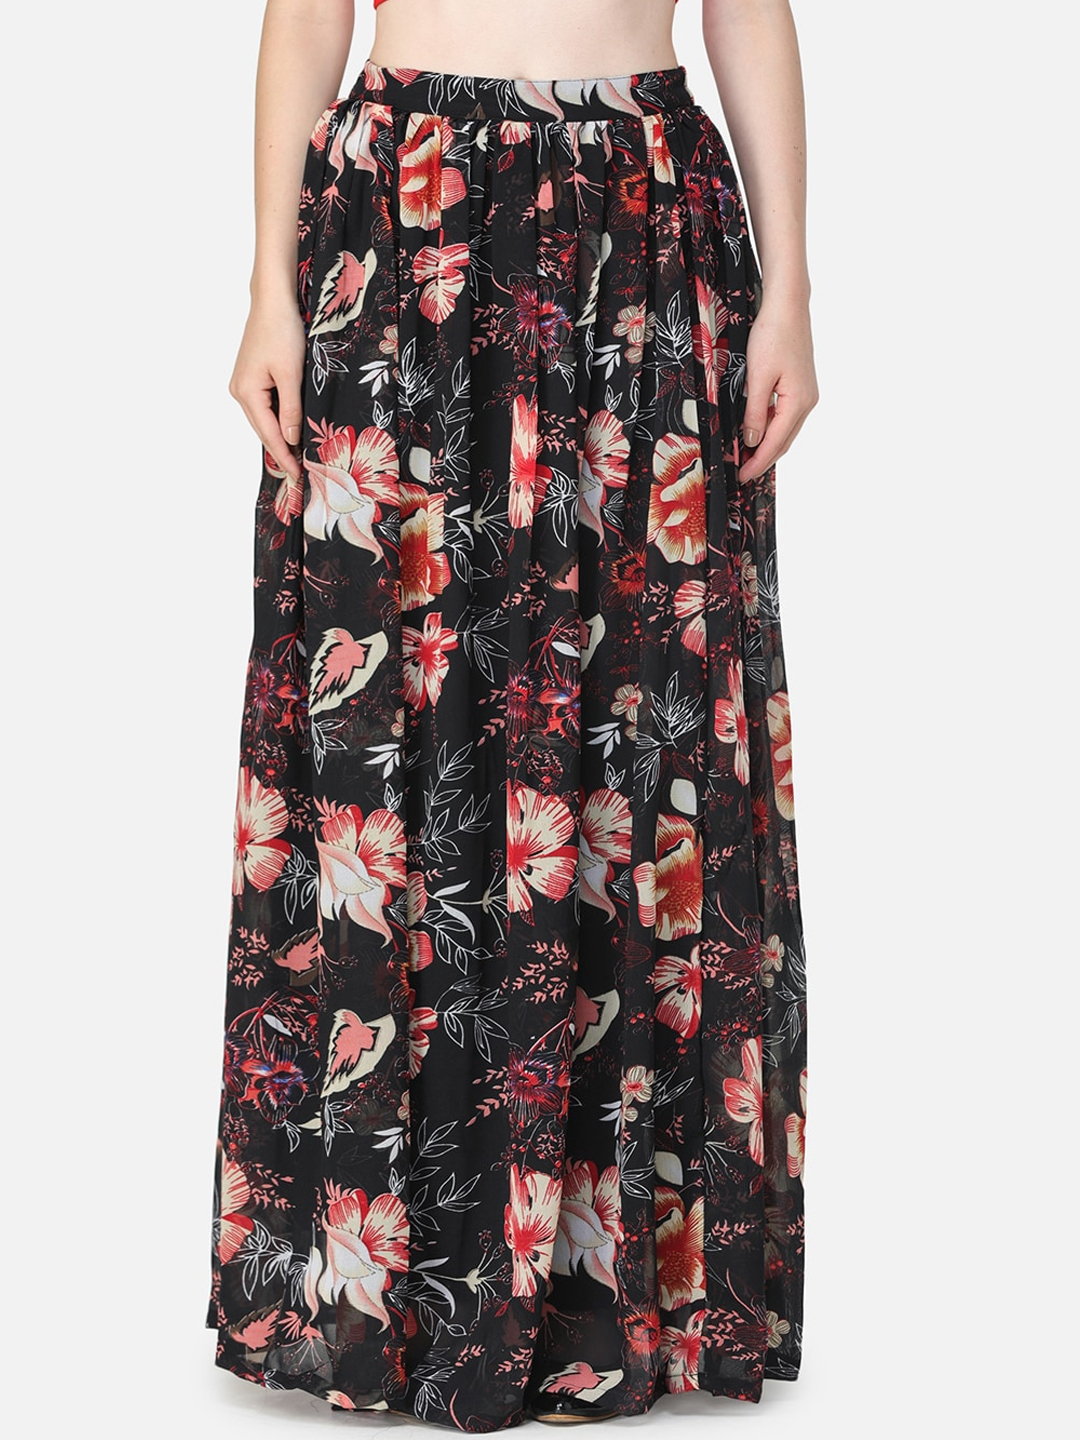 SCORPIUS Women Black   Red Floral Printed Pleated Flared Maxi Skirt